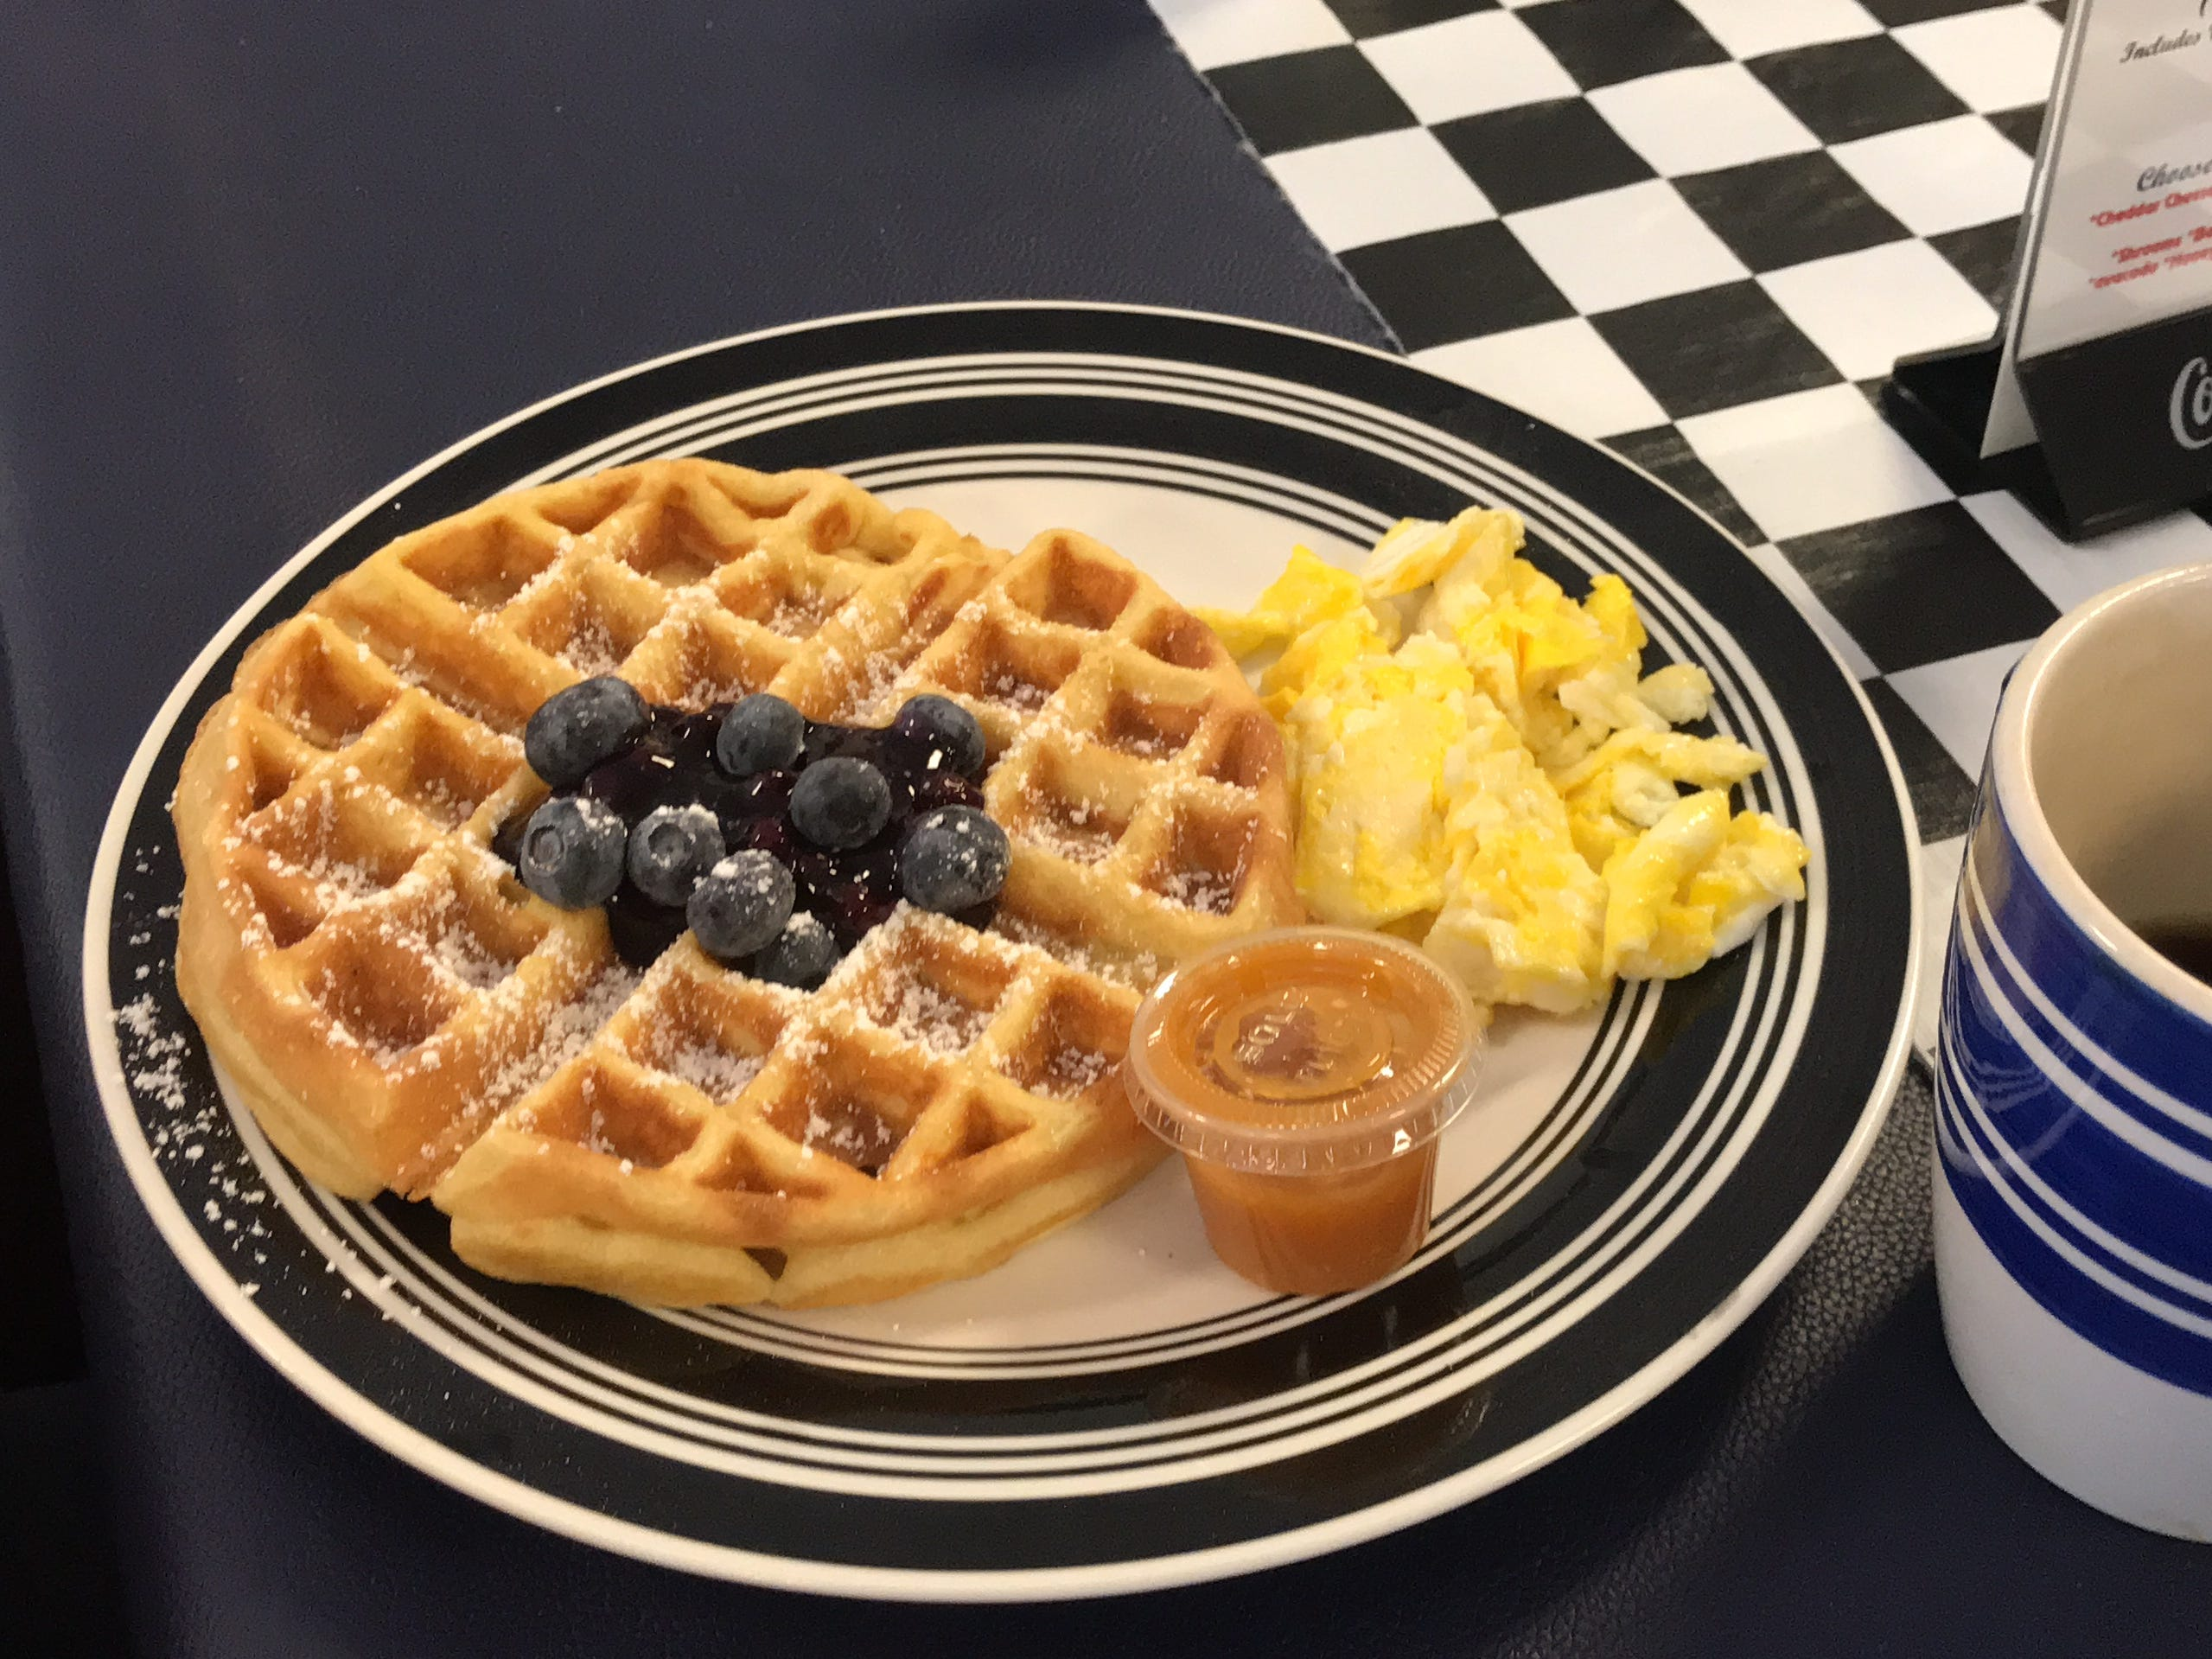 Sandi's Diner is known for their homemade waffles and breakfast all day menu.